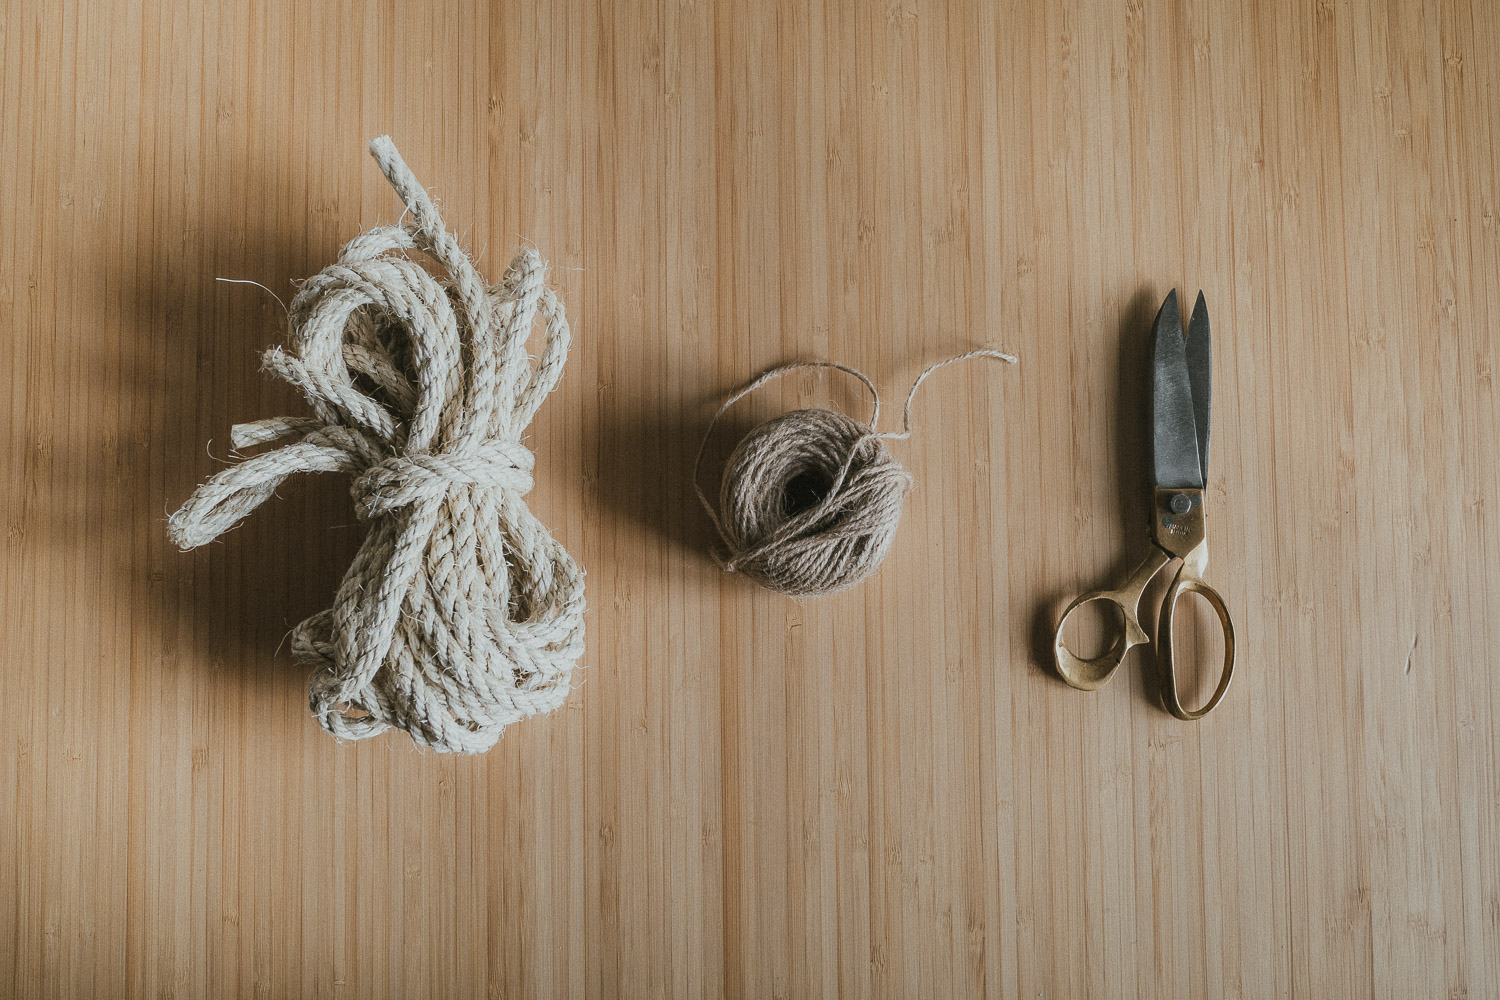 rope, jute twine and scissors